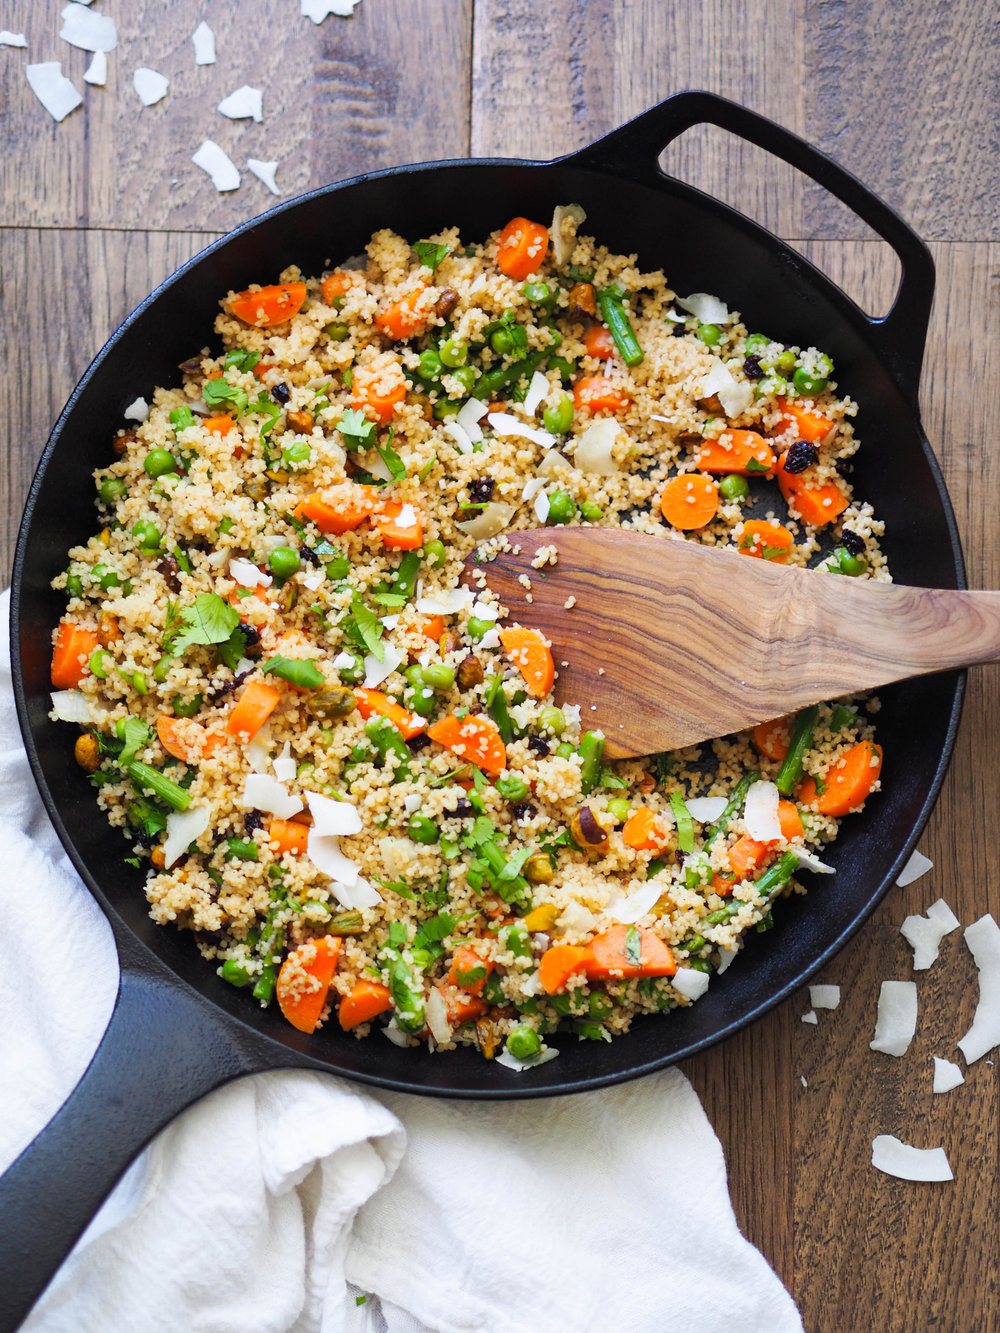 Make this spring vegetable coconut couscous with spicy harissa chicken! Mix in any vegetables you like in this easily adaptable dish! Takes less than 30 minutes! #harissa #dinnerrecipe #easyrecipe #30minutemeal #couscous #wholegrain #asparagus #spring